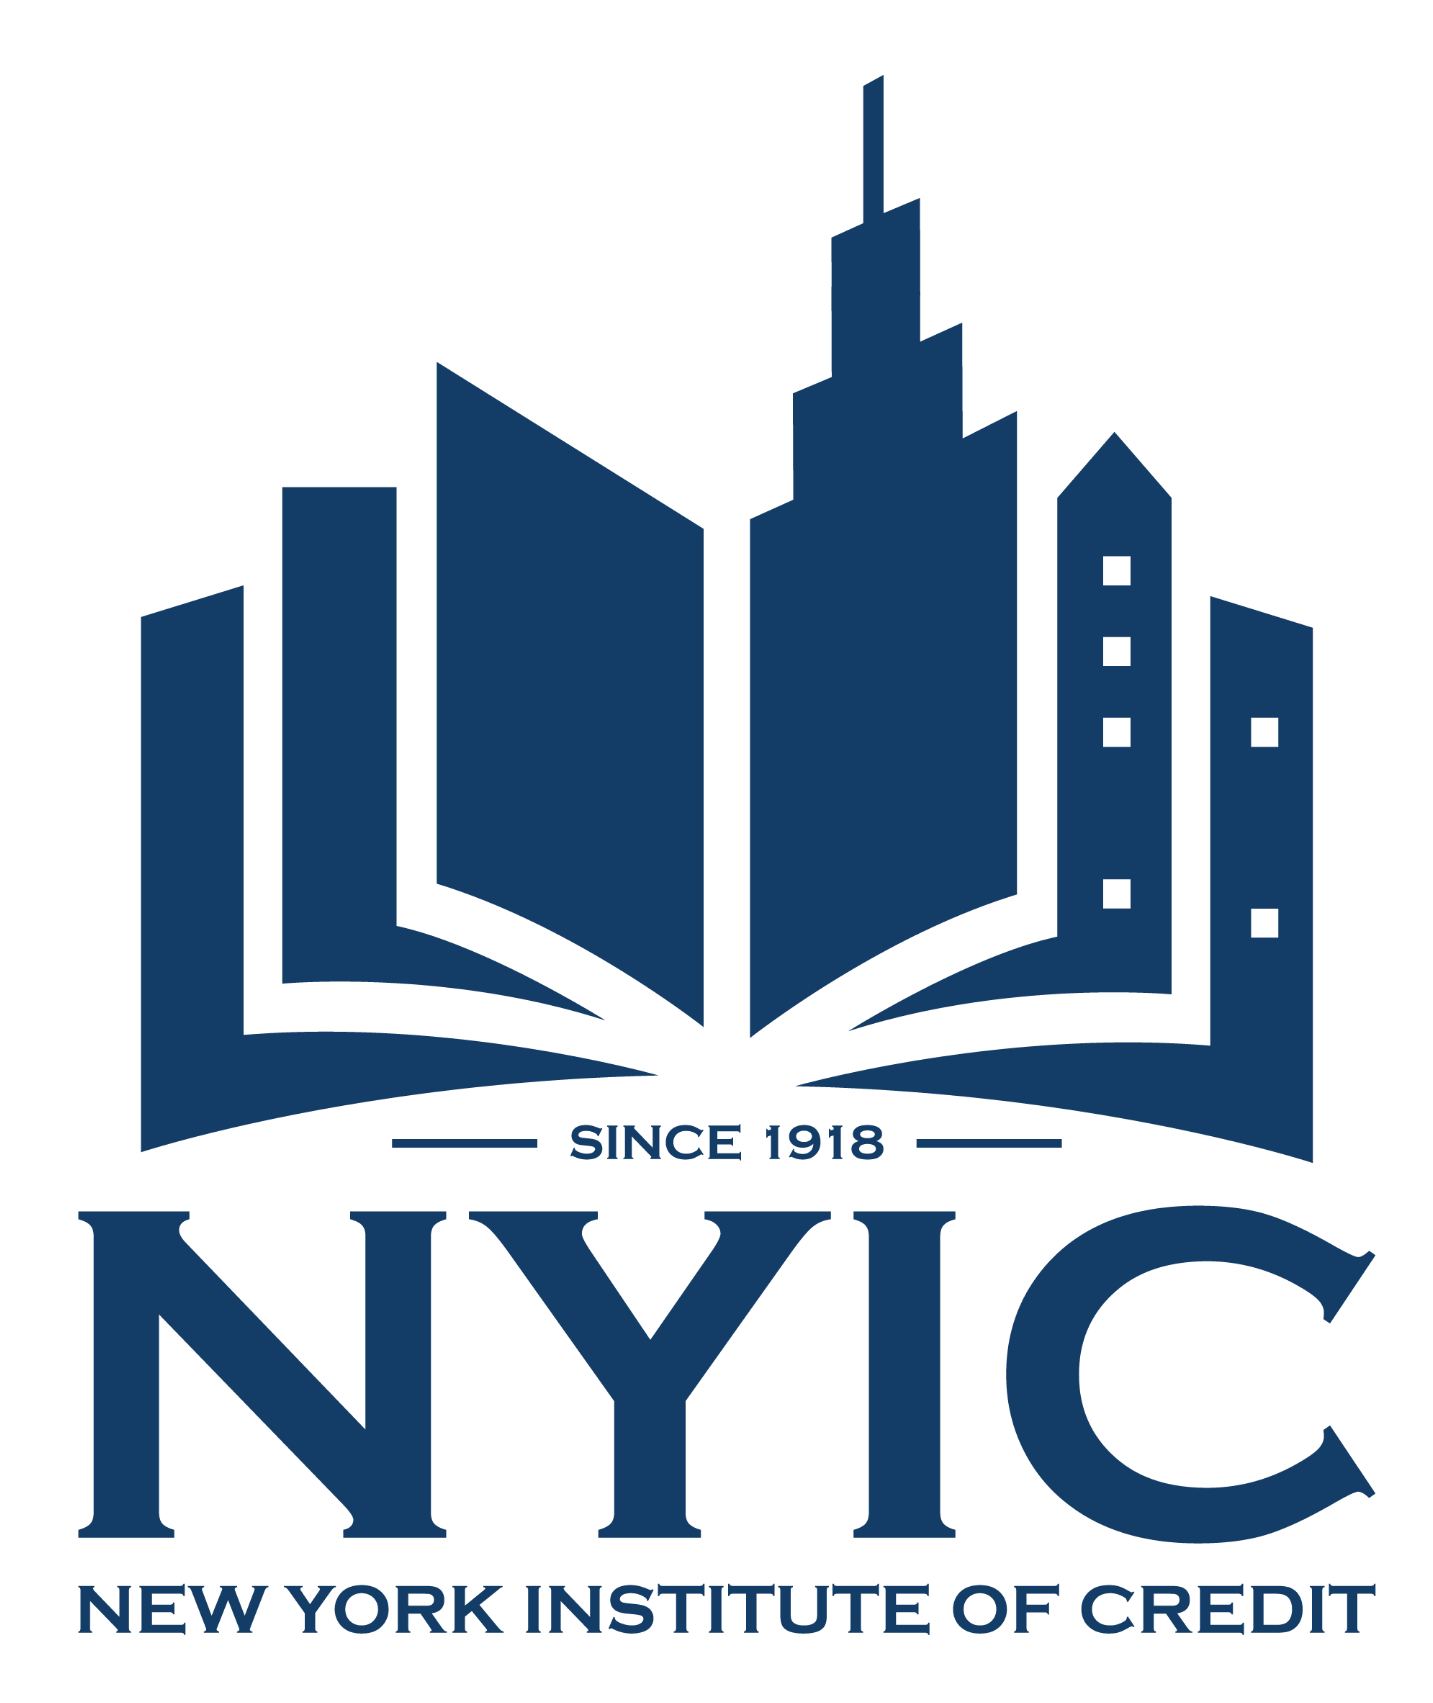 New York Institute of Credit (NYIC)